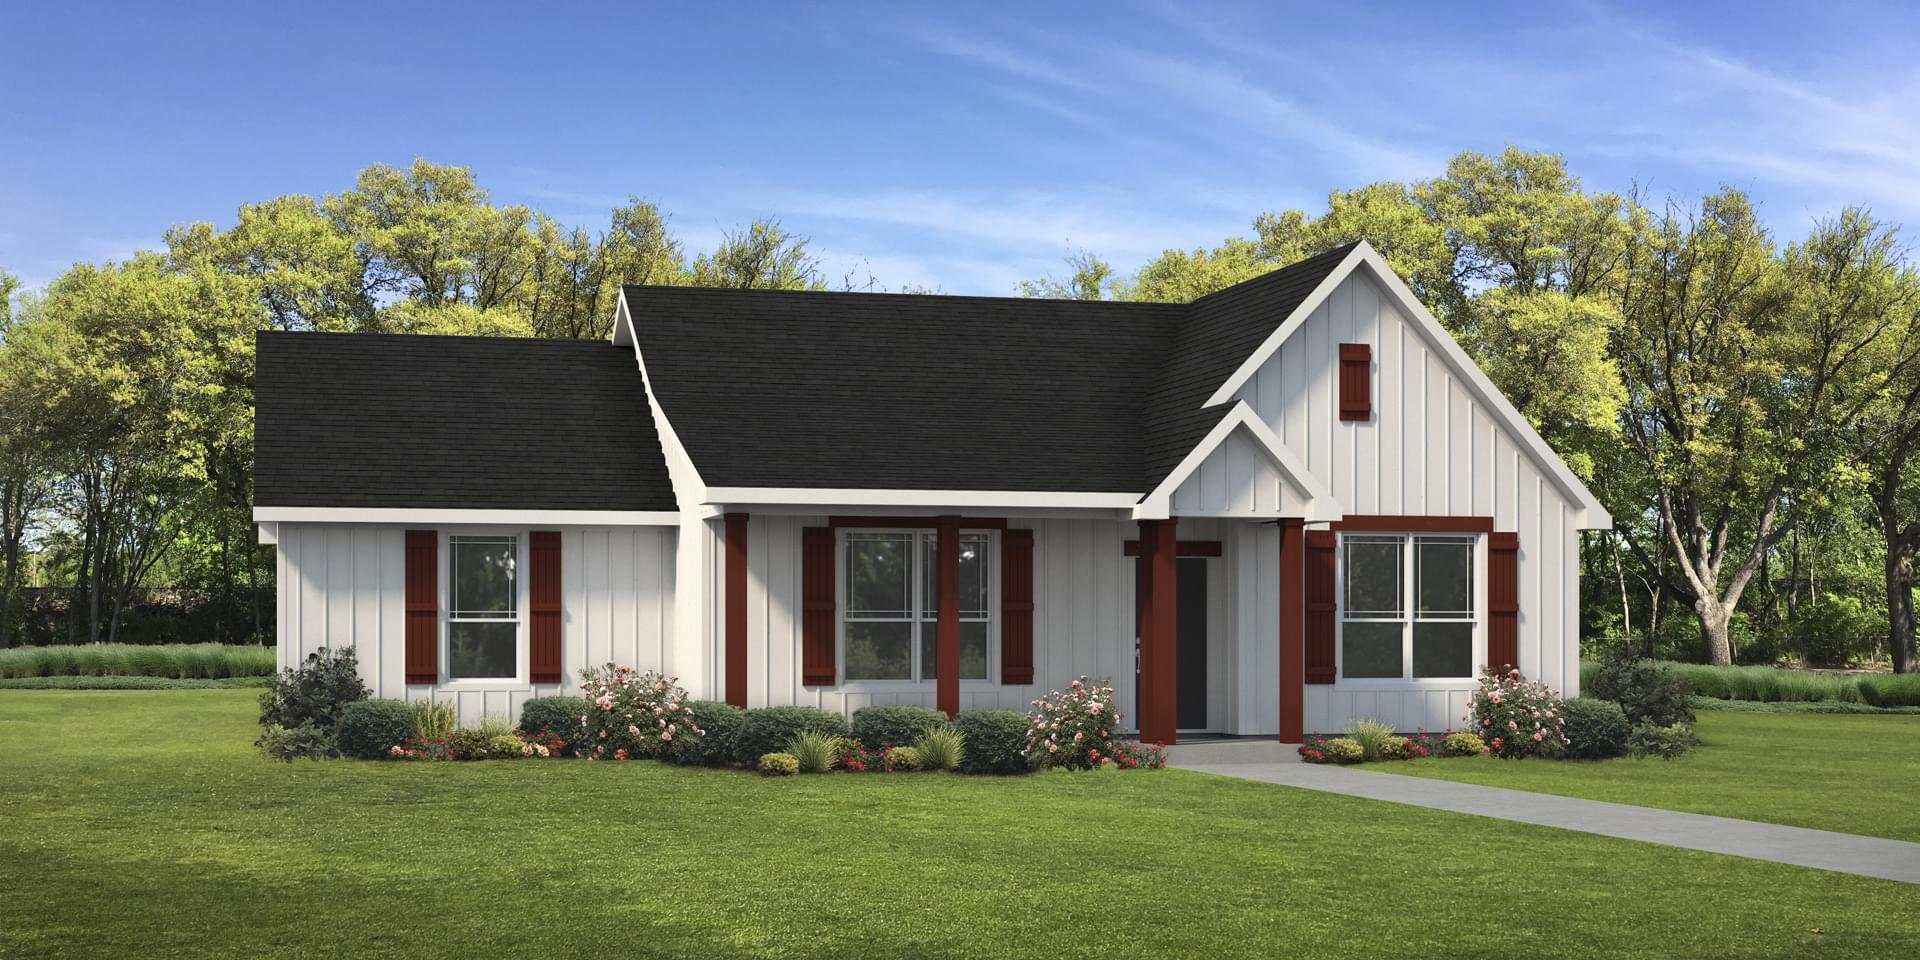 The Harrisburg Custom Home Plan from Tilson Homes